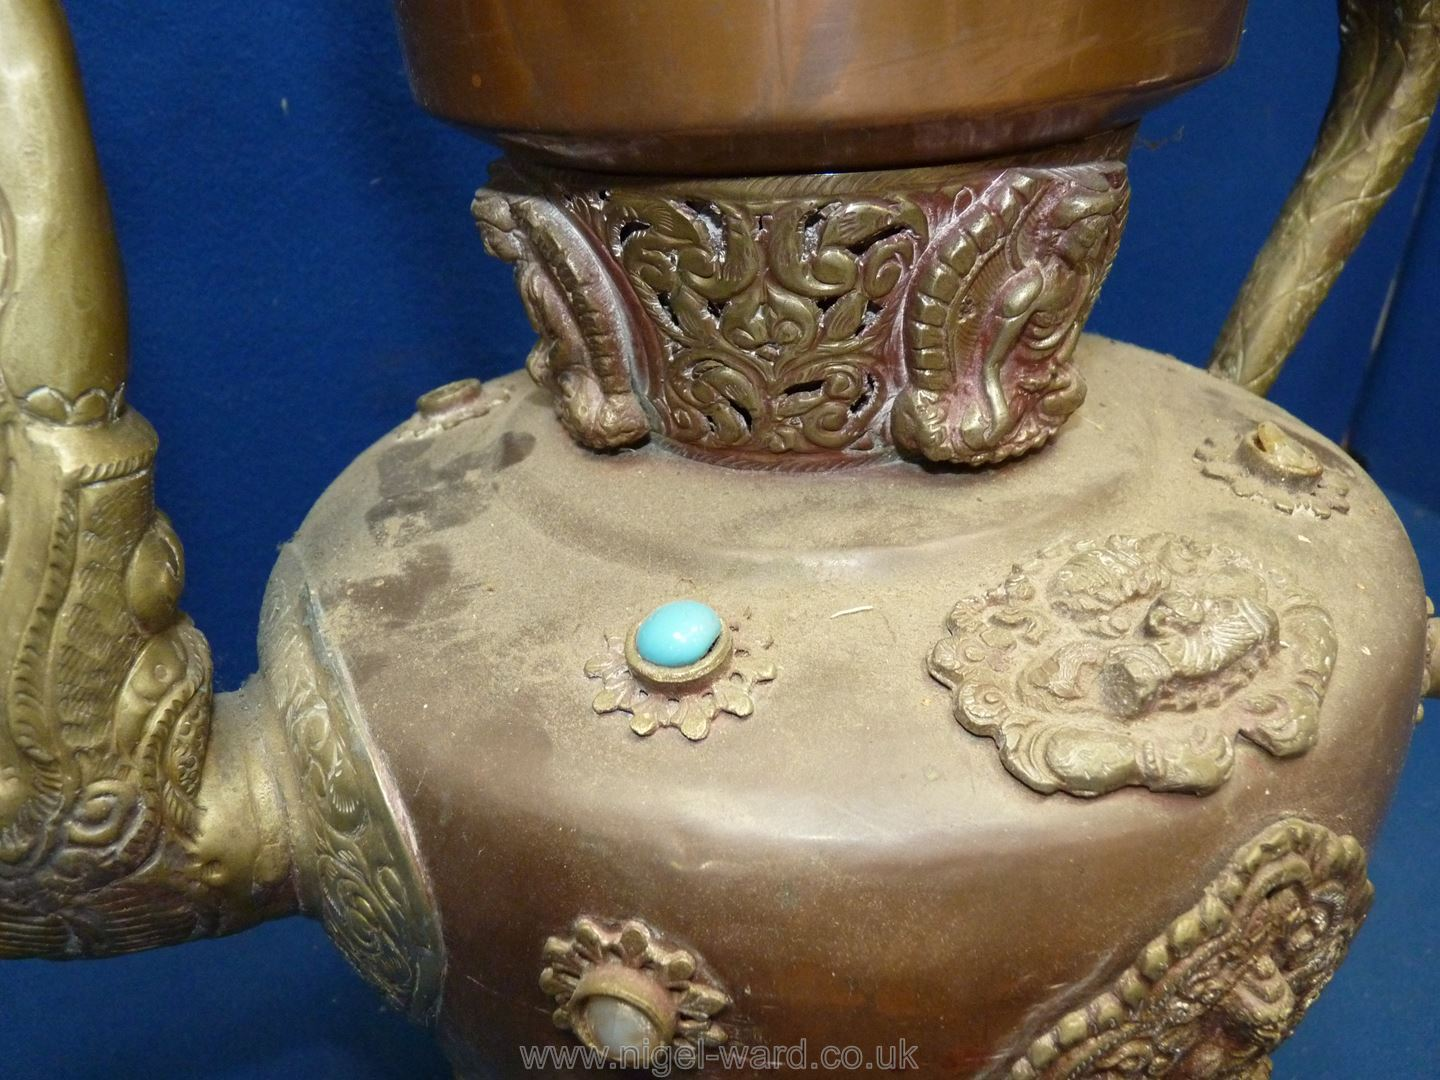 A Tibetan copper and brass ceremonial Dragon ewer with dragon handles and spout, - Image 3 of 9